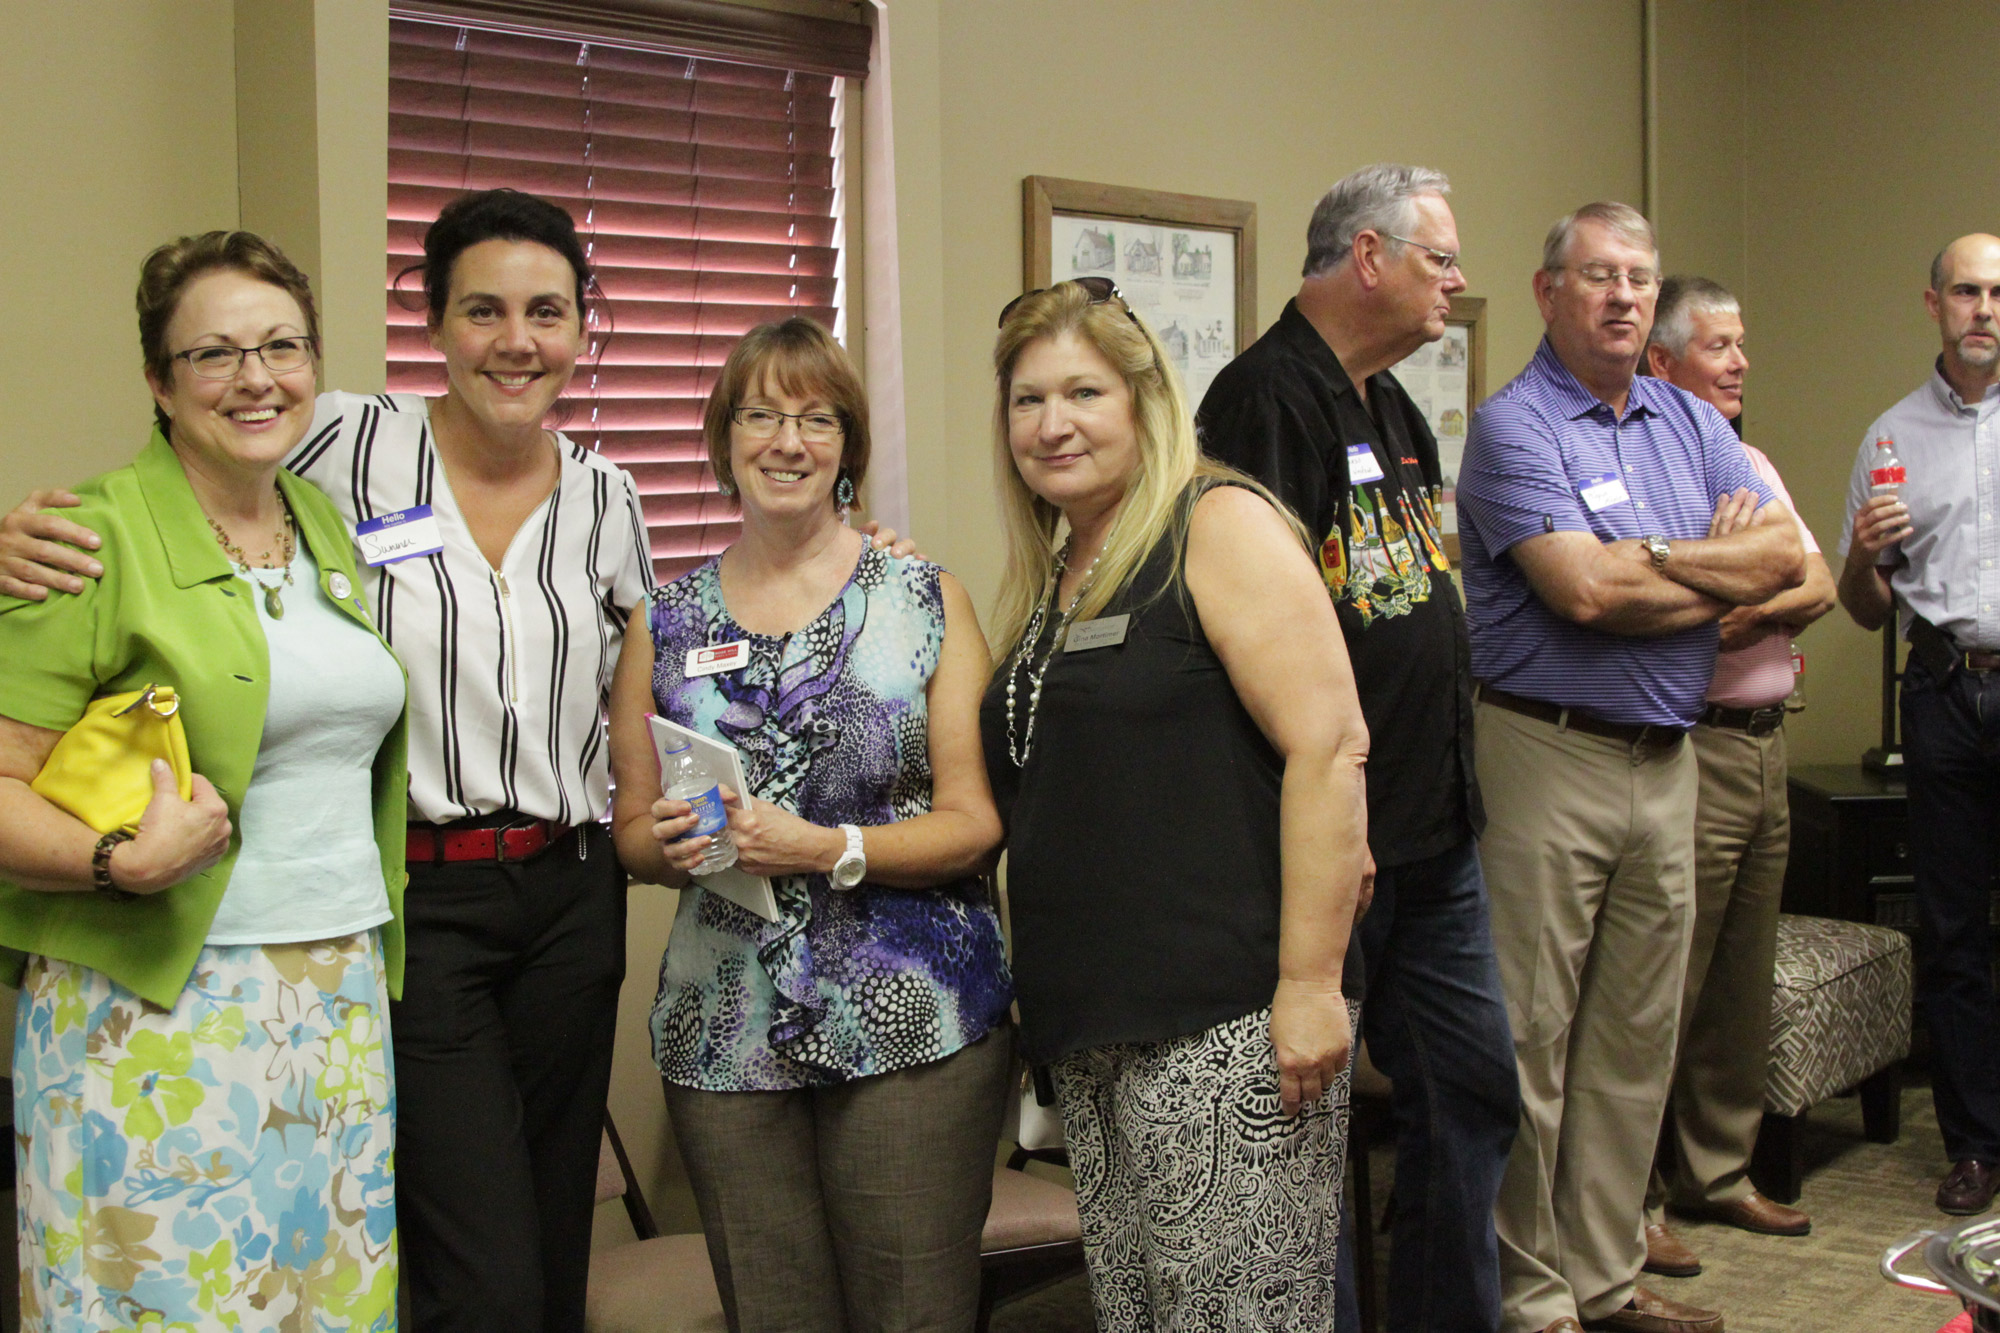 Fellow Rose Hill Chamber members and guests enjoyed the chamber mixer hosted at the Rose Hill Public Library.